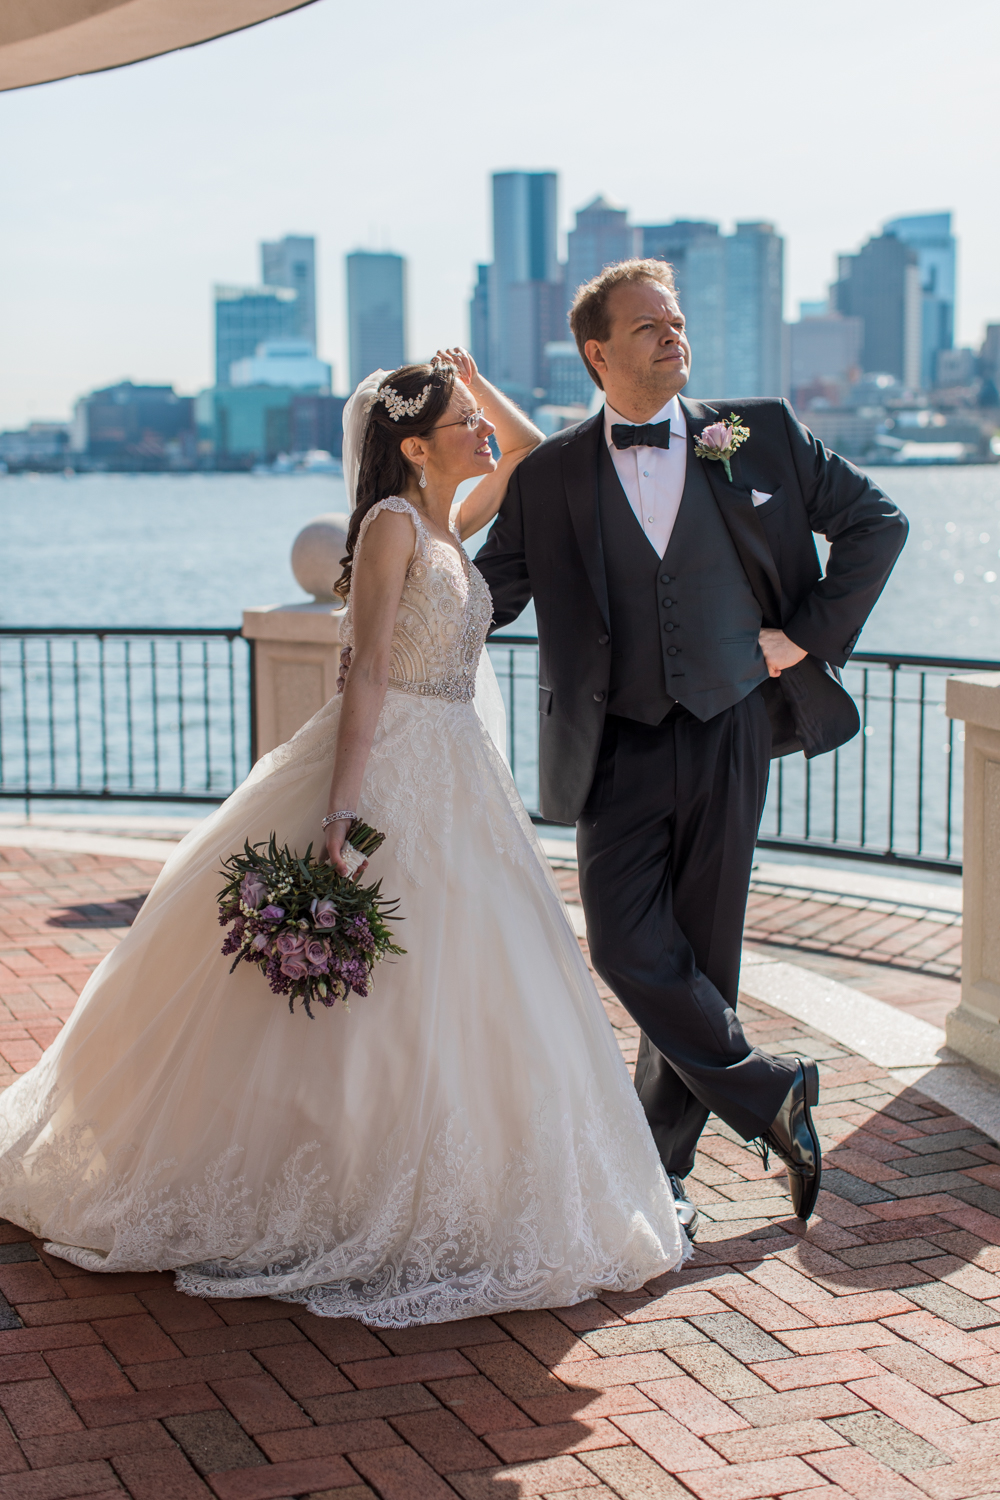 piers park wedding photography